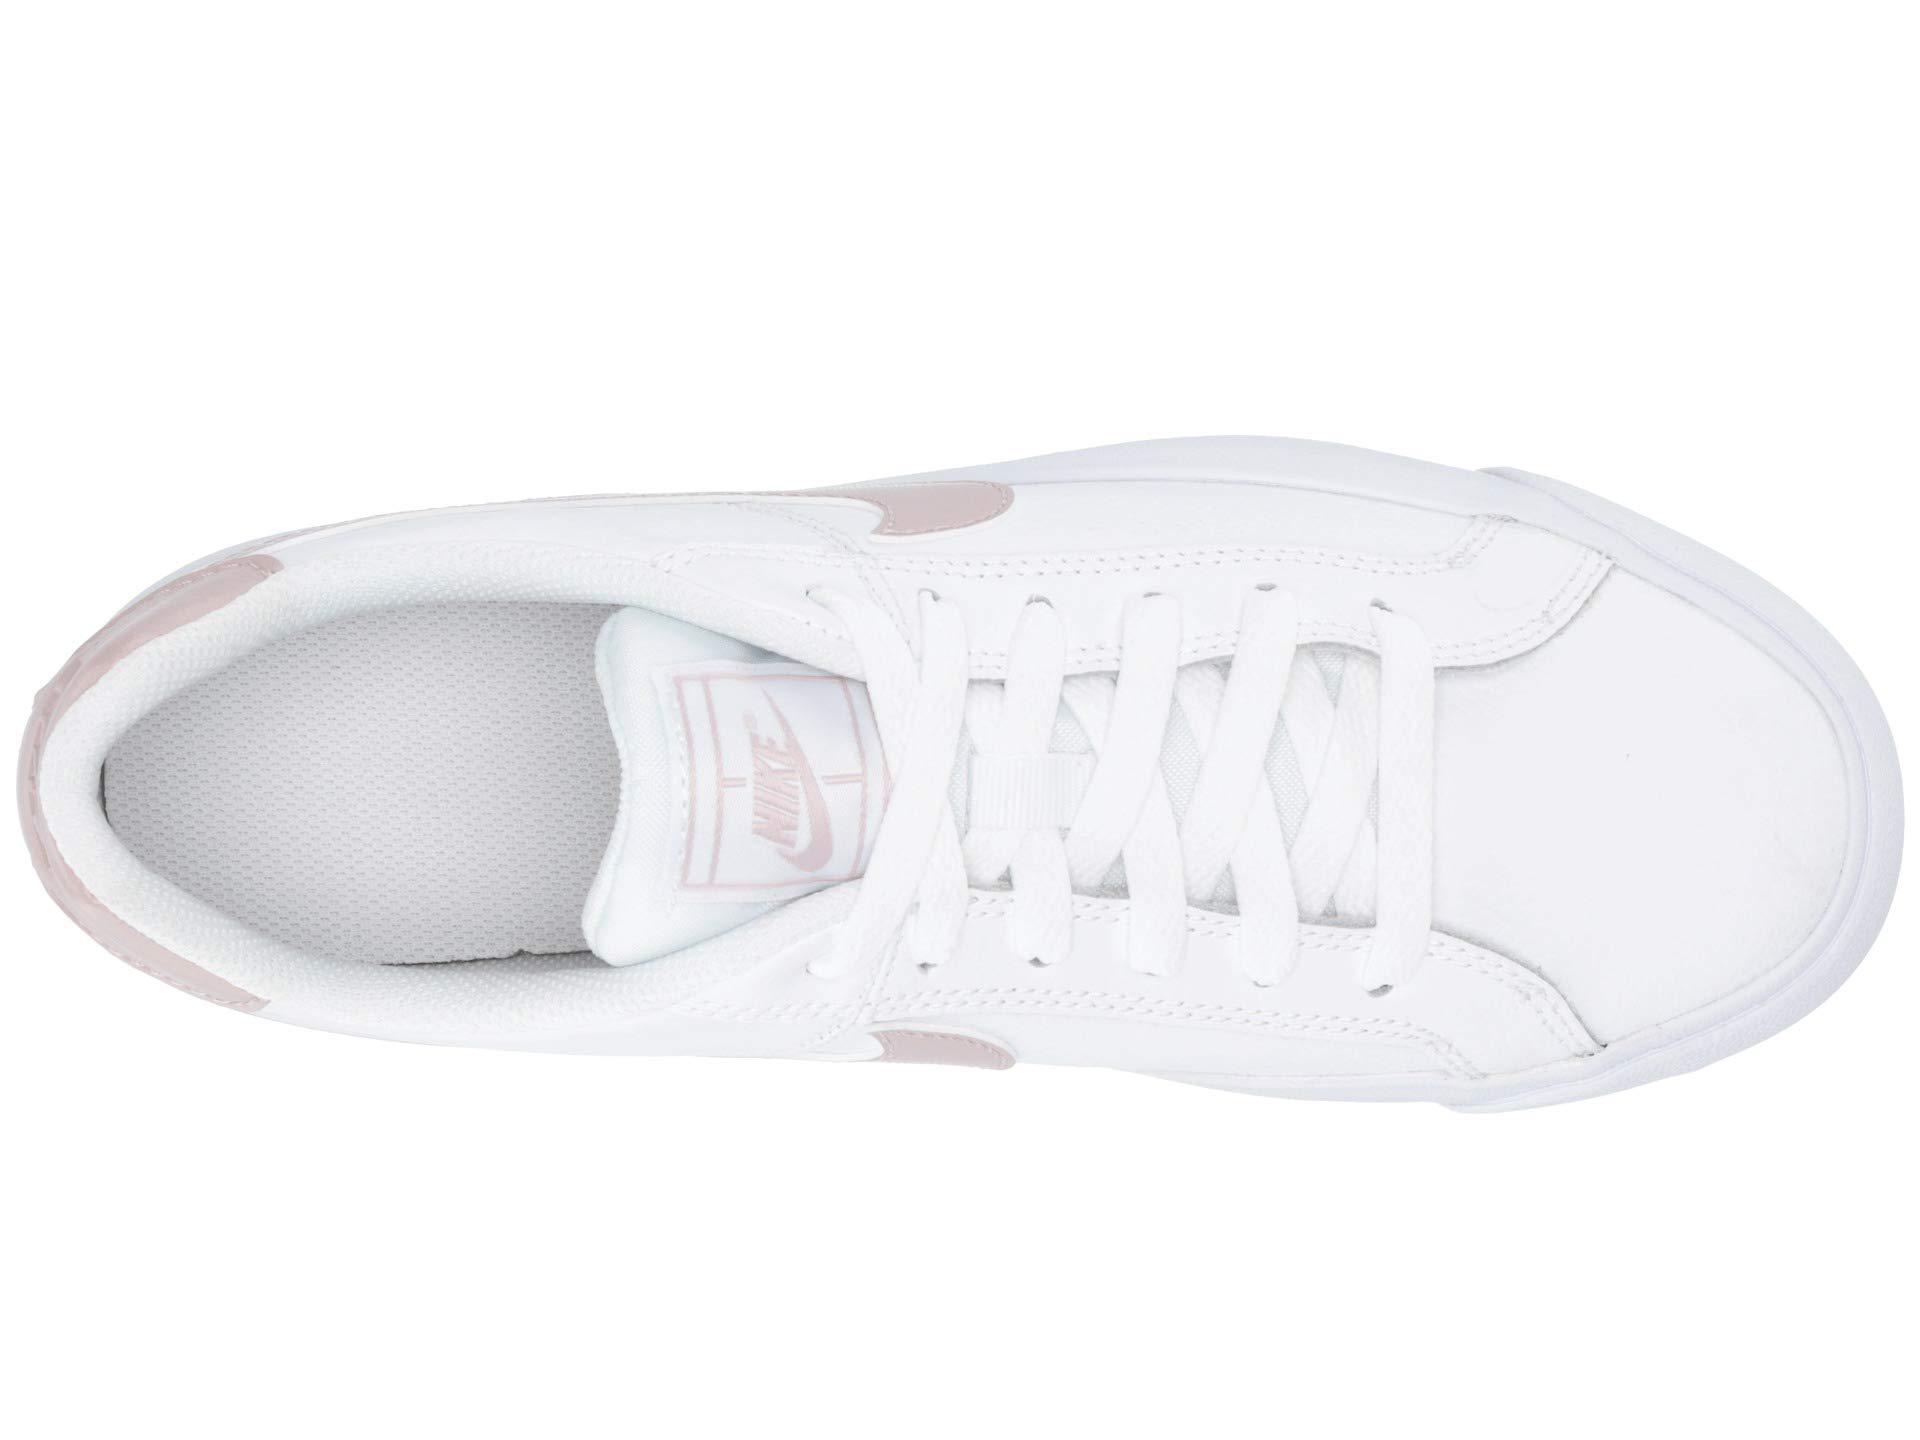 Lyst - Nike Court Royale Ac (white particle Rose) Women s Shoes in White d5d1a8bd0